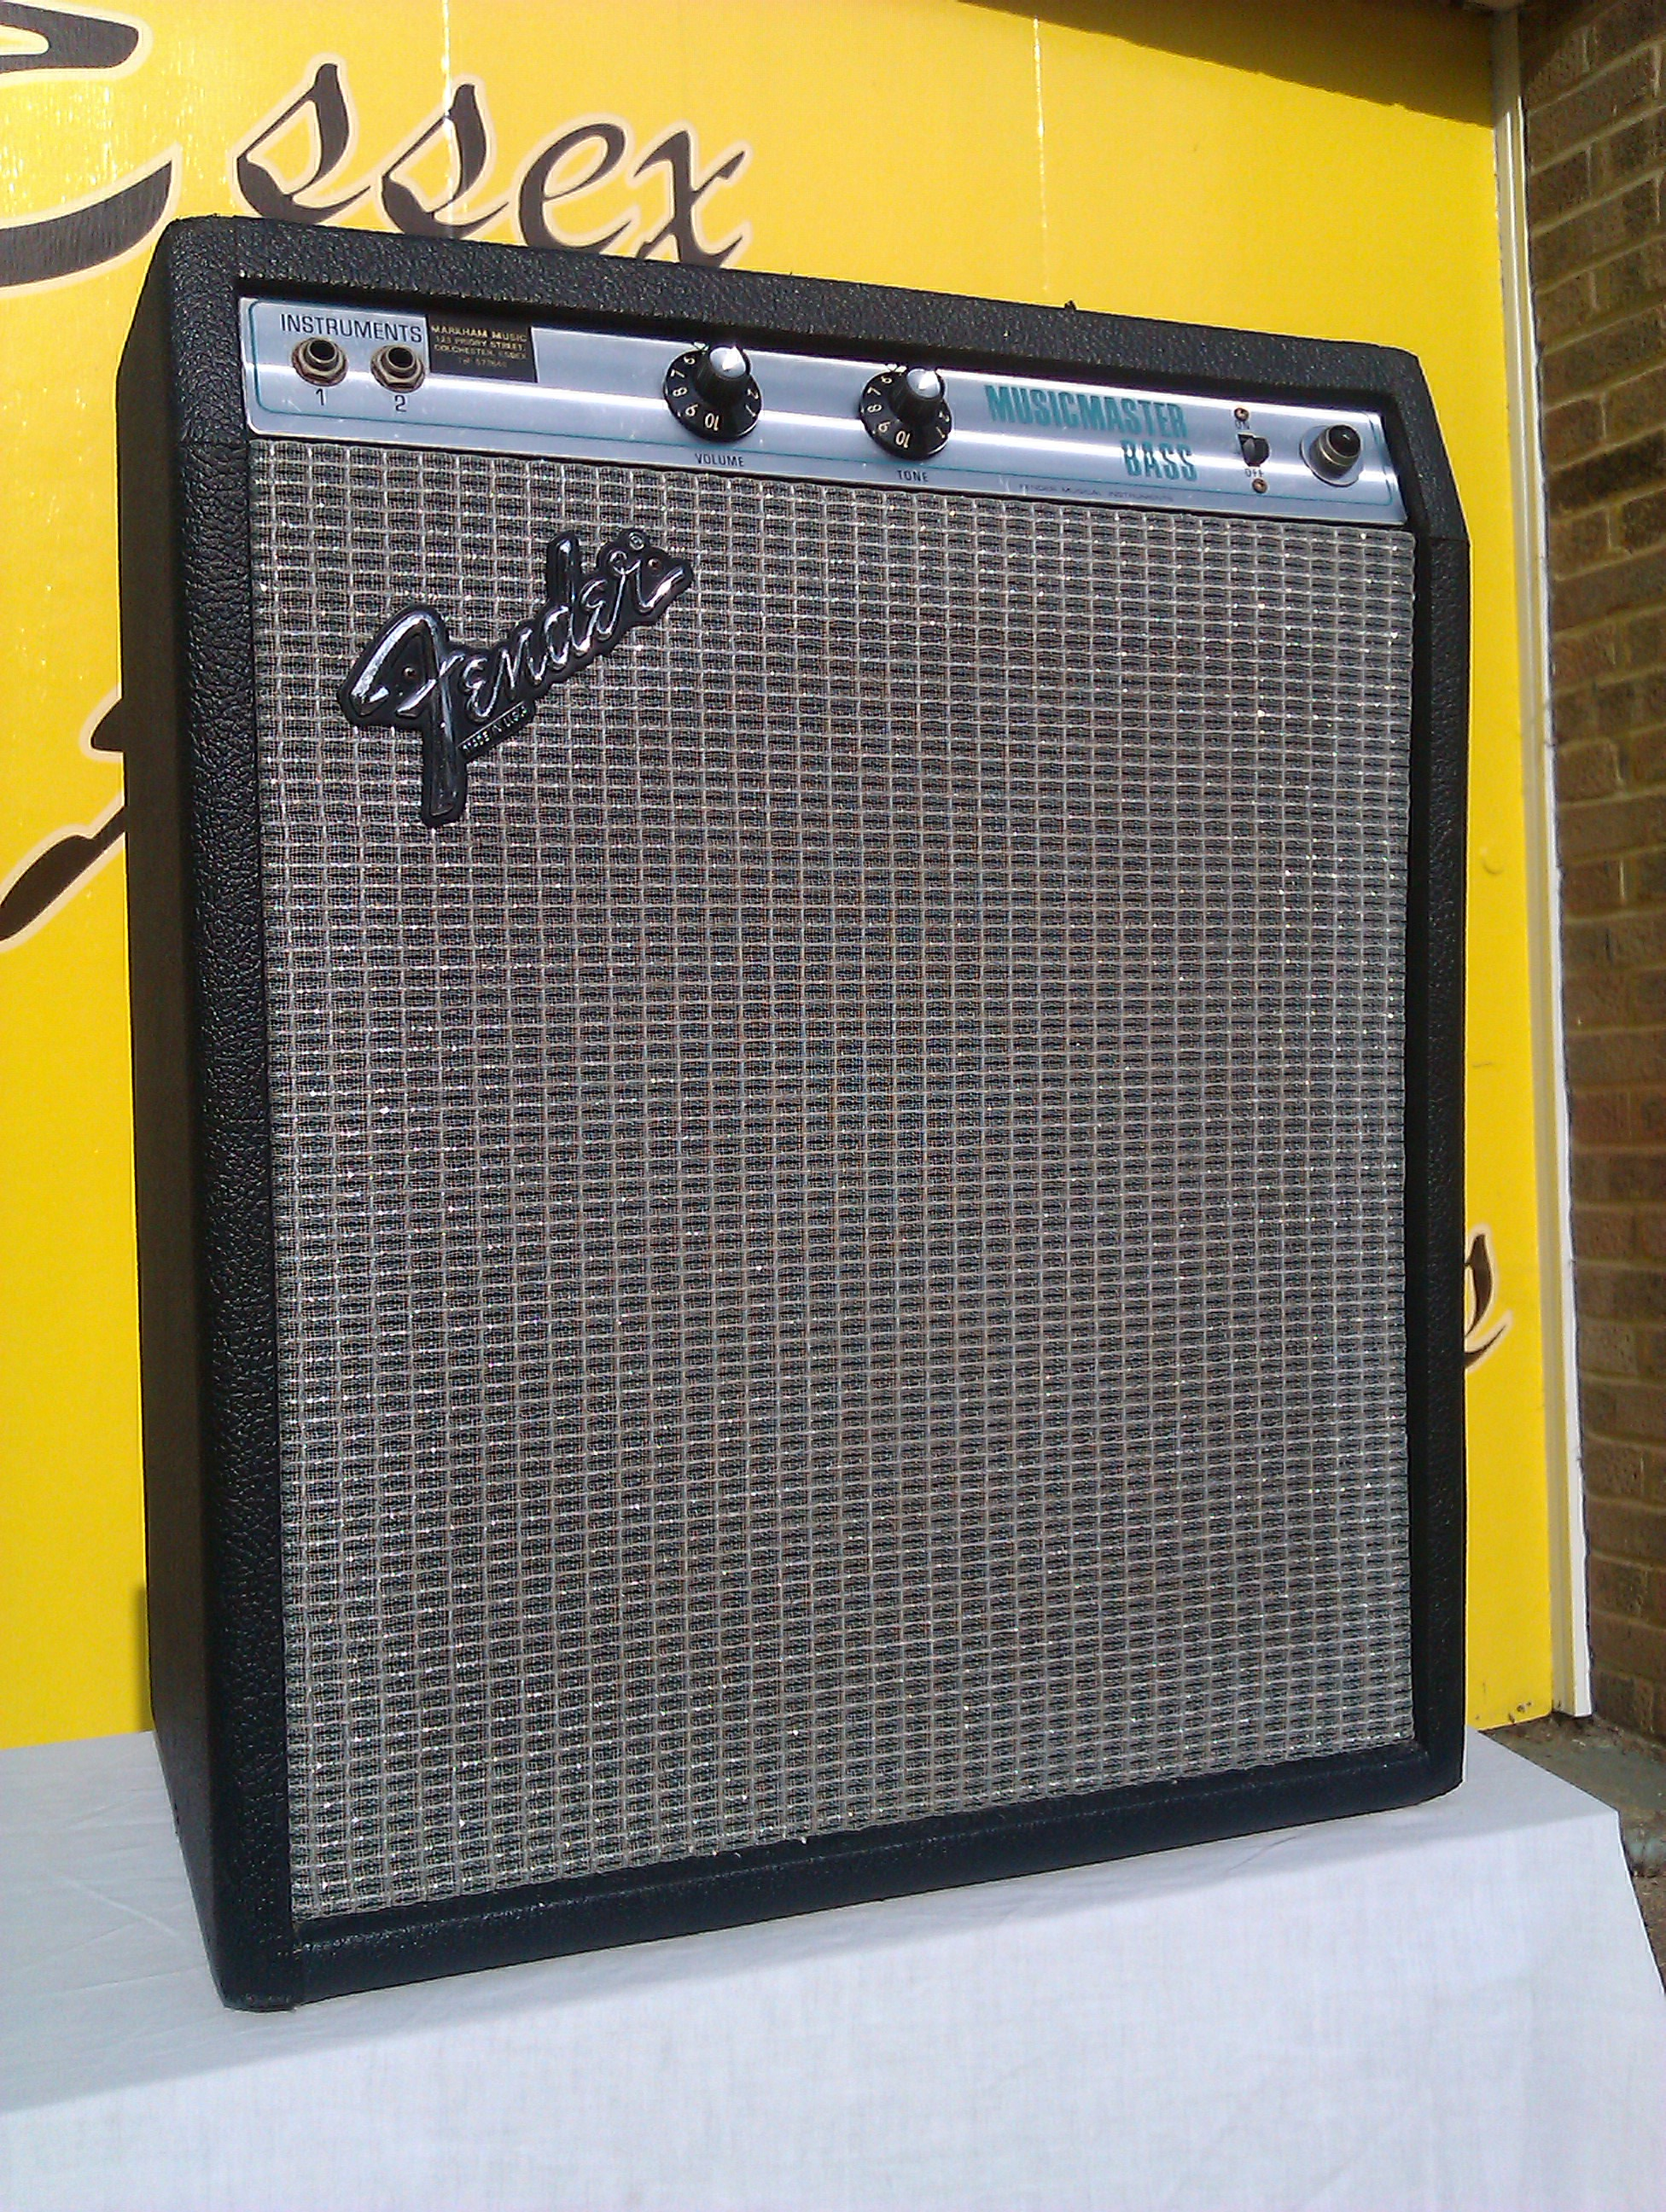 Rare small bass amp from the mid 1970's